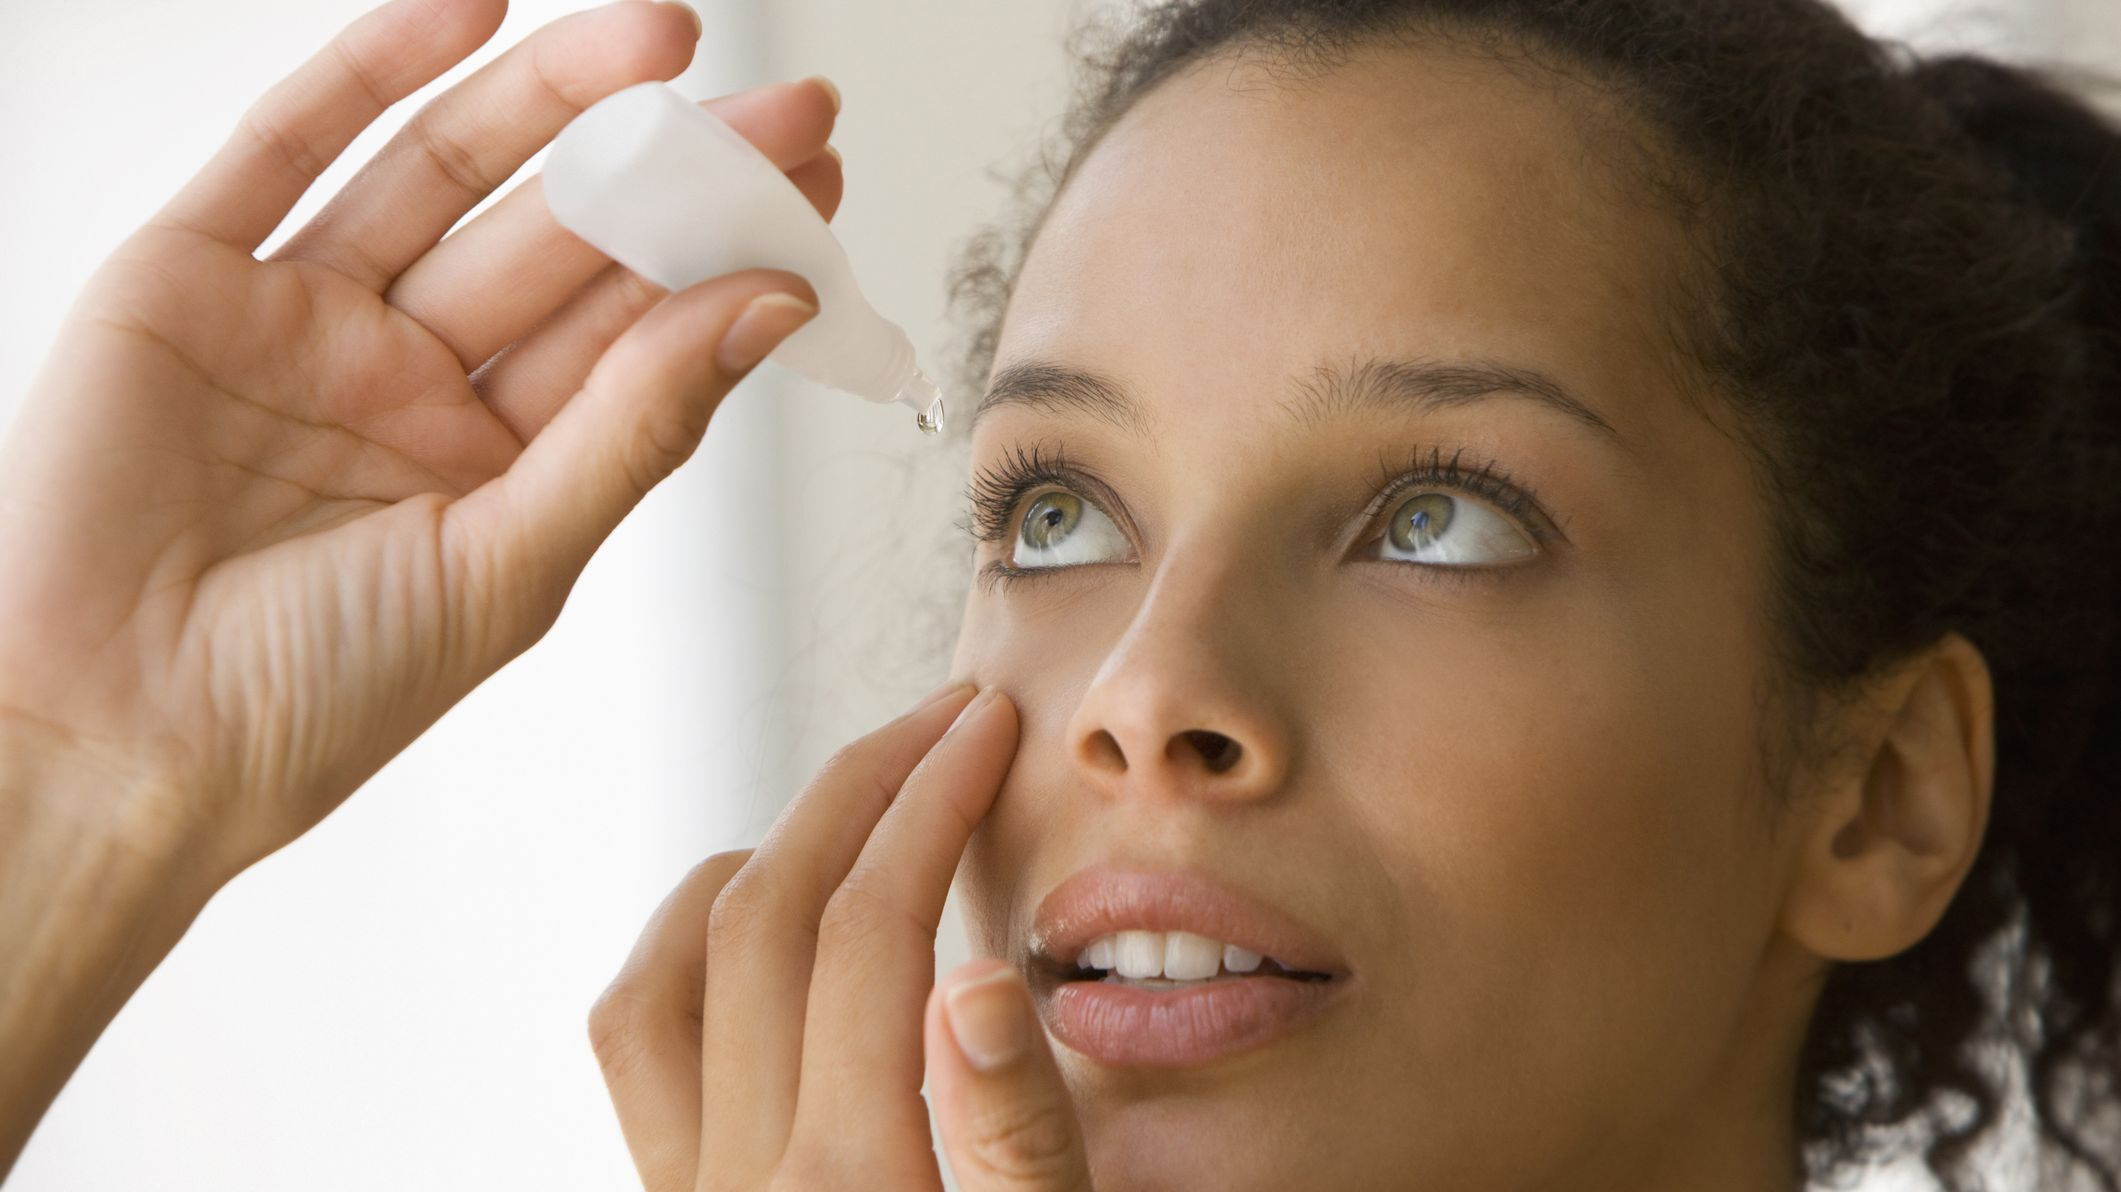 Why Can You Taste Your Eye Drops?   Mental Floss